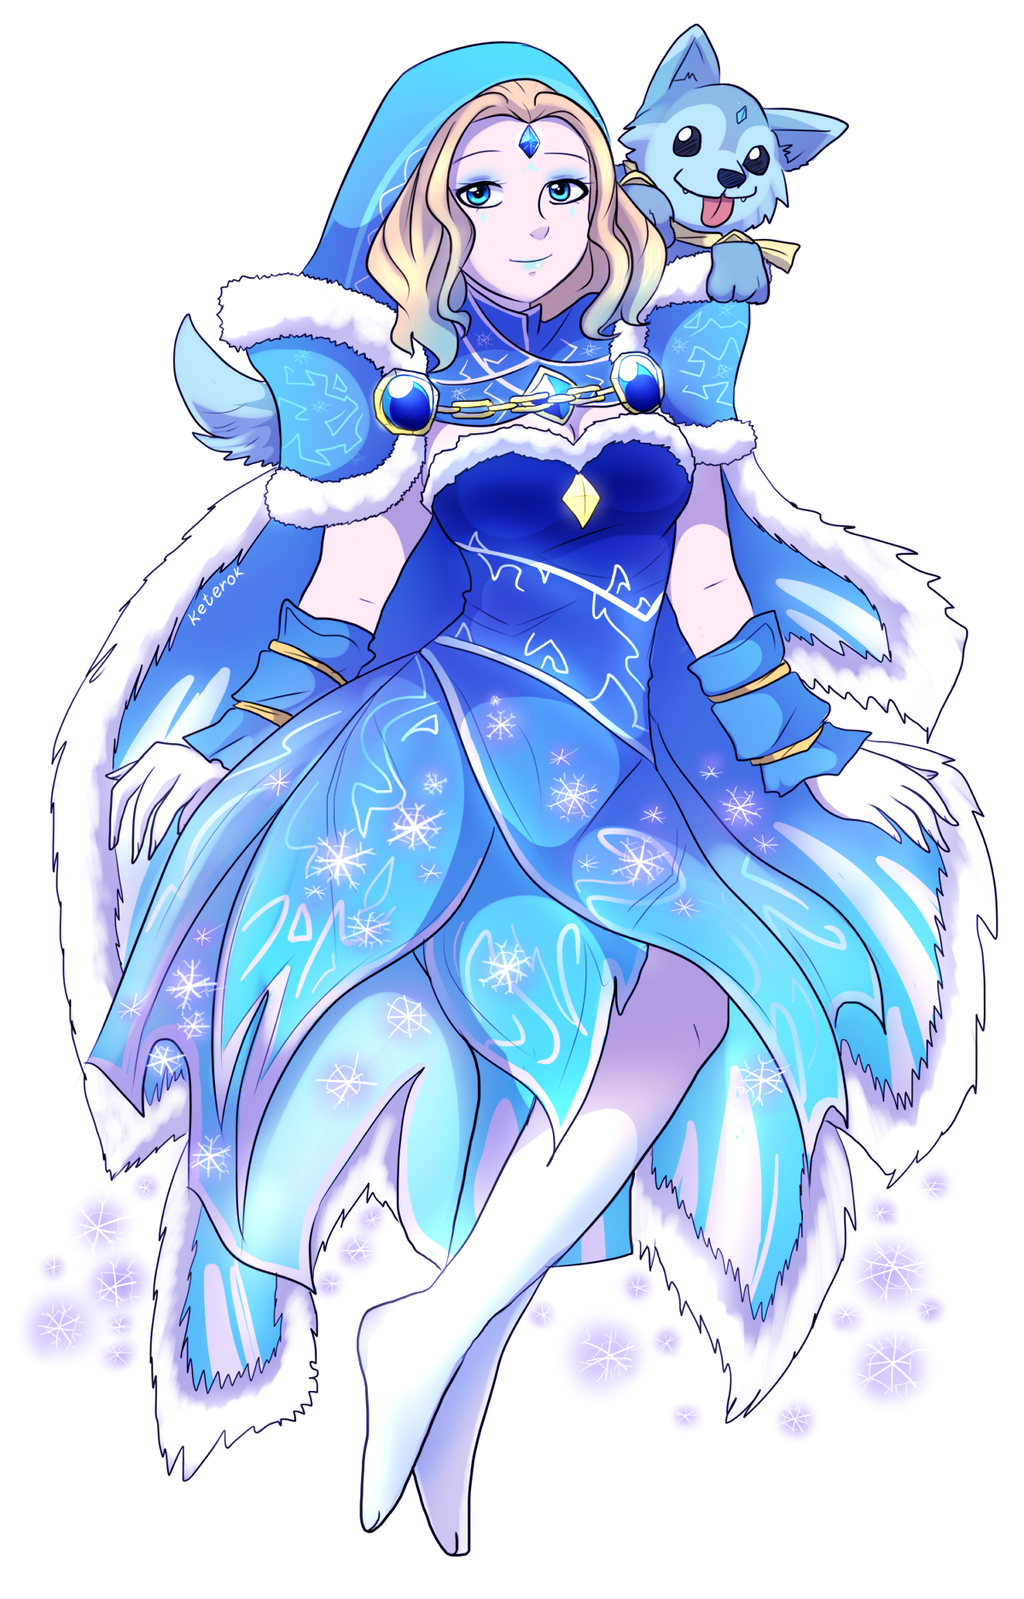 Crystal Maiden Arcana by keterok on DeviantArt